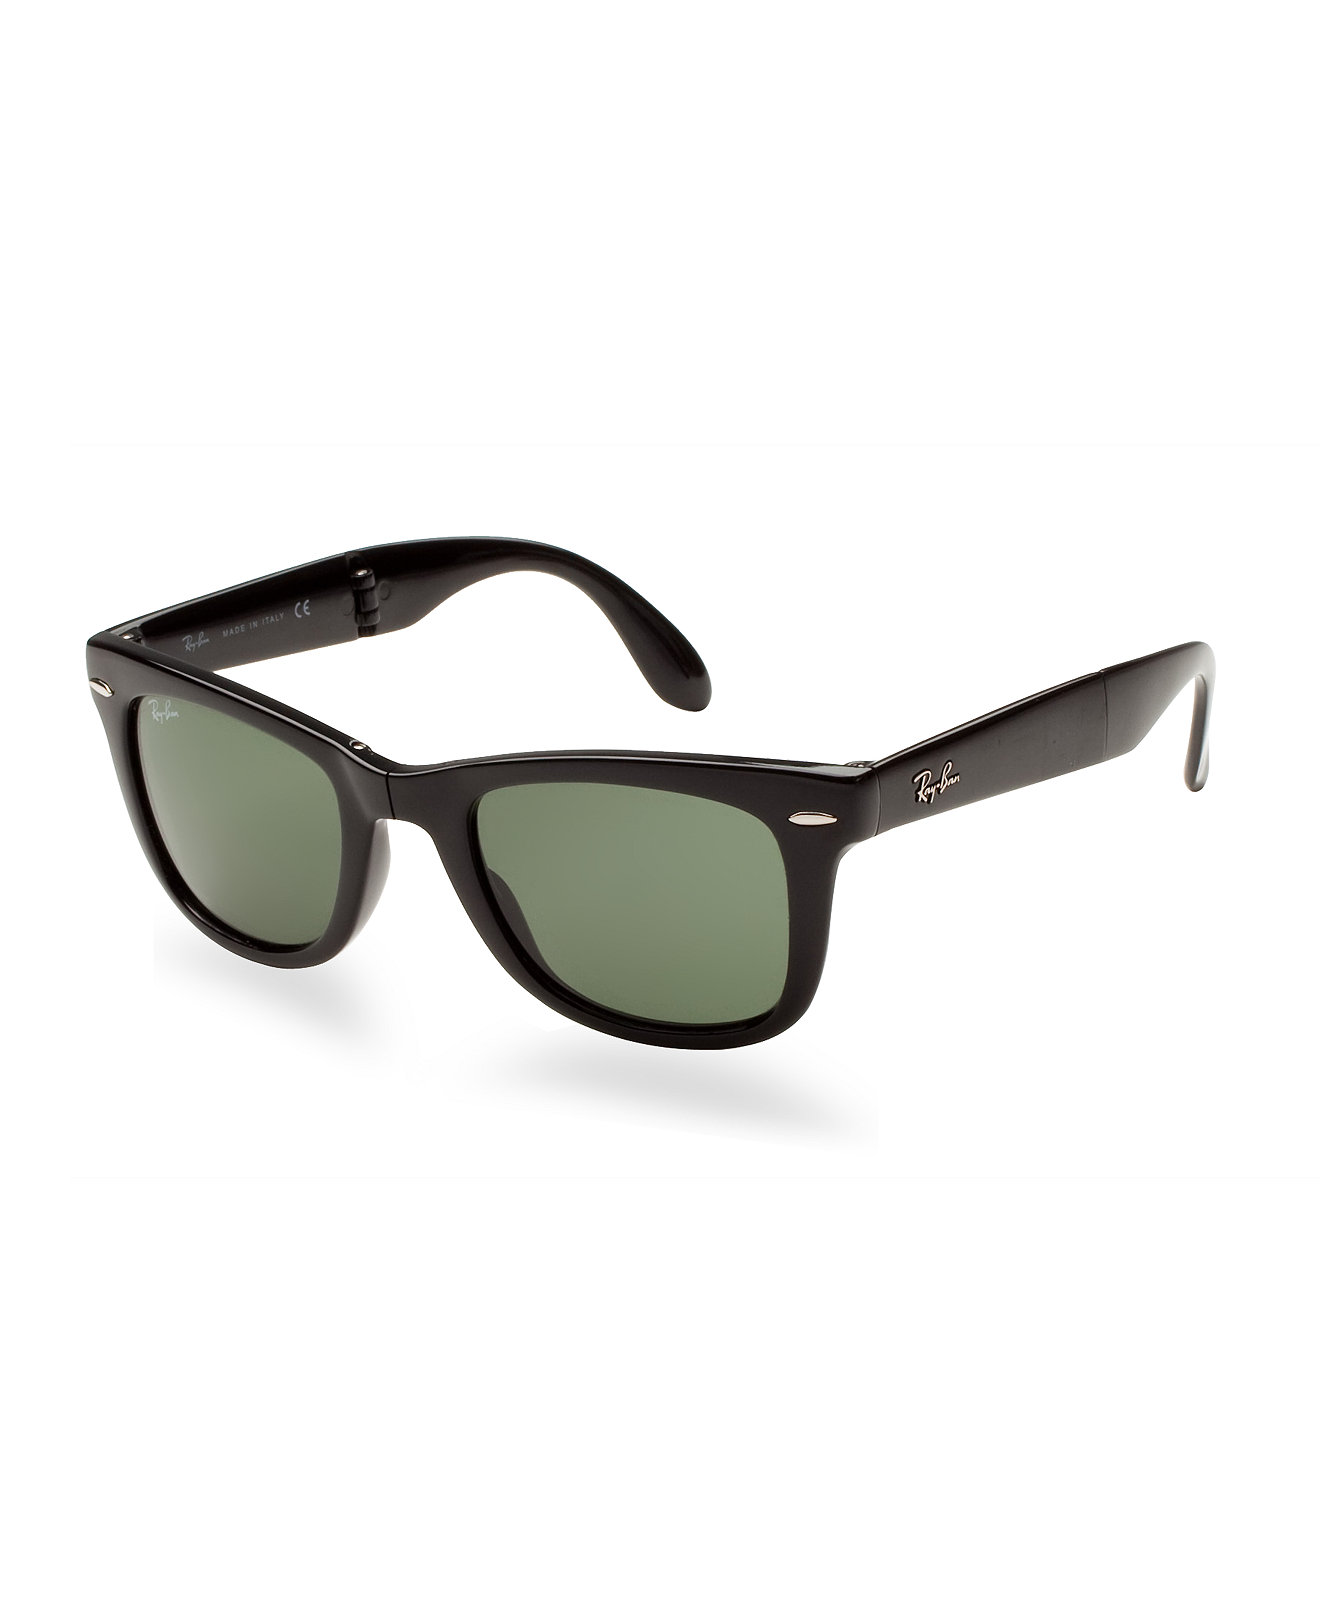 Ray Ban Canada One Day Sale